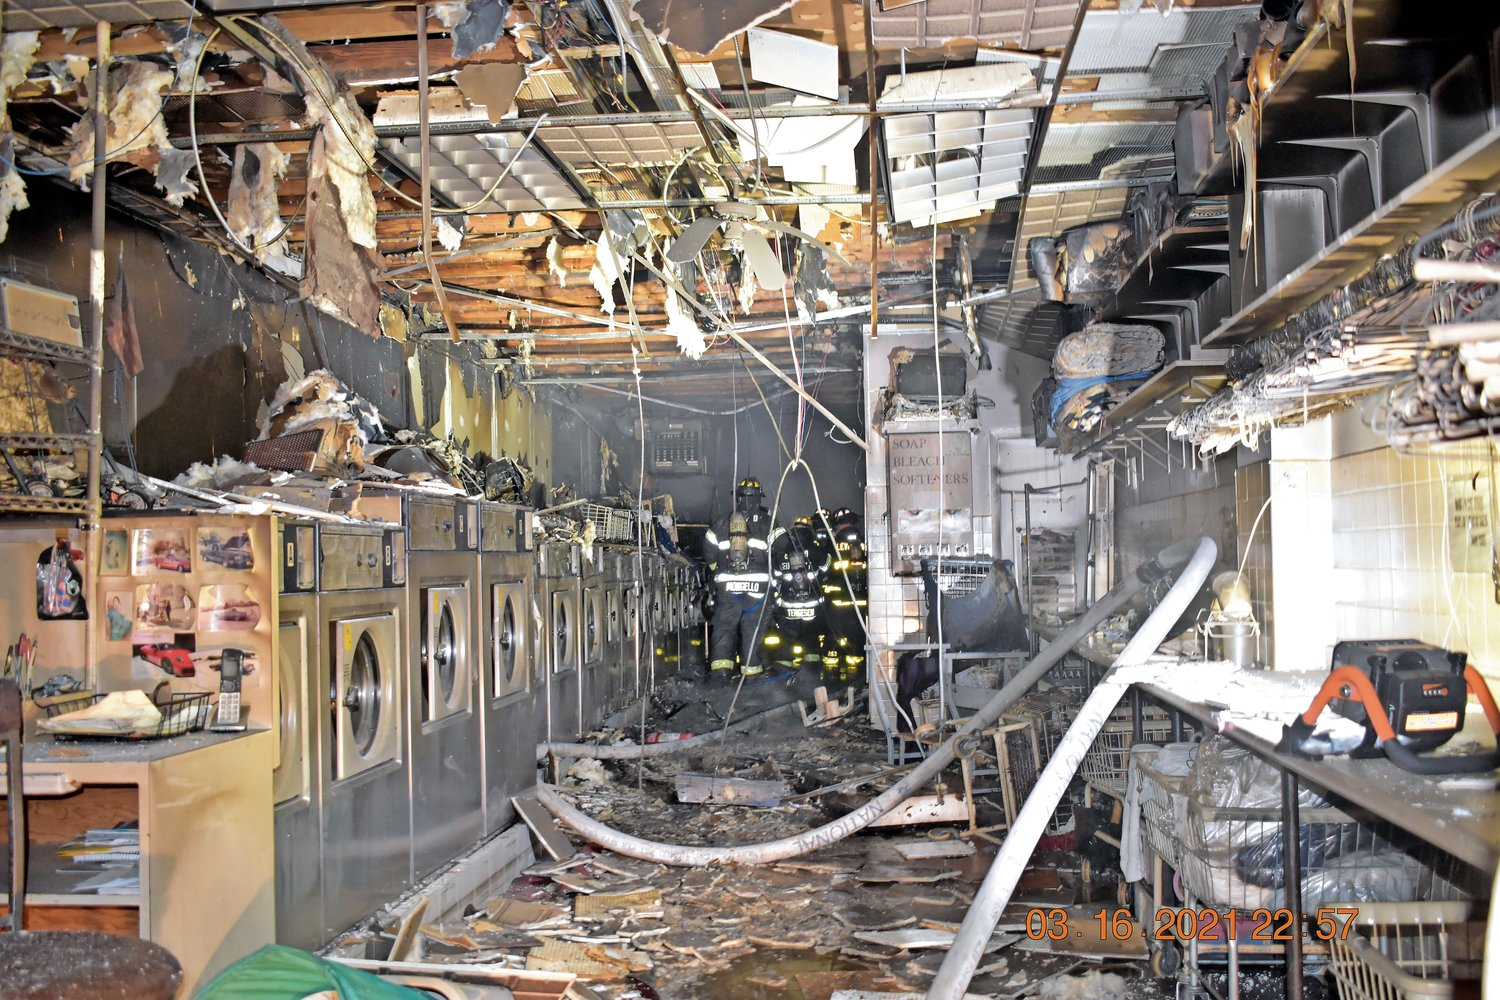 The damage at Every Day Laundromat, left, where the fire began, is extensive.